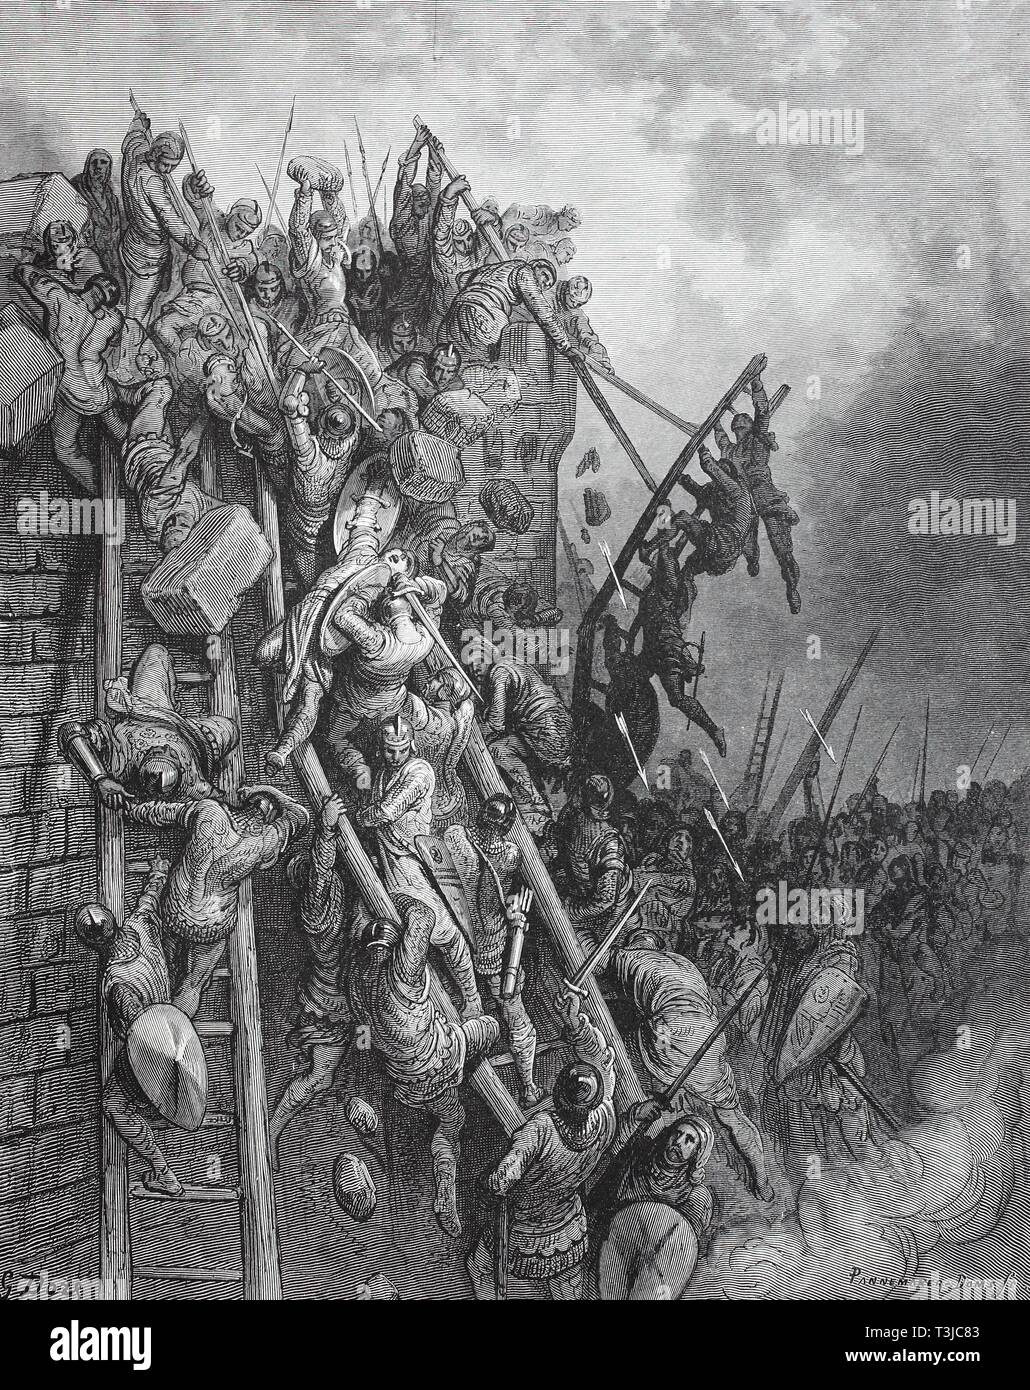 The Crusaders attack with scaling ladders to the walls of Wieselburg and are repulsed with heavy losses, First crusade, historical illustration - Stock Image